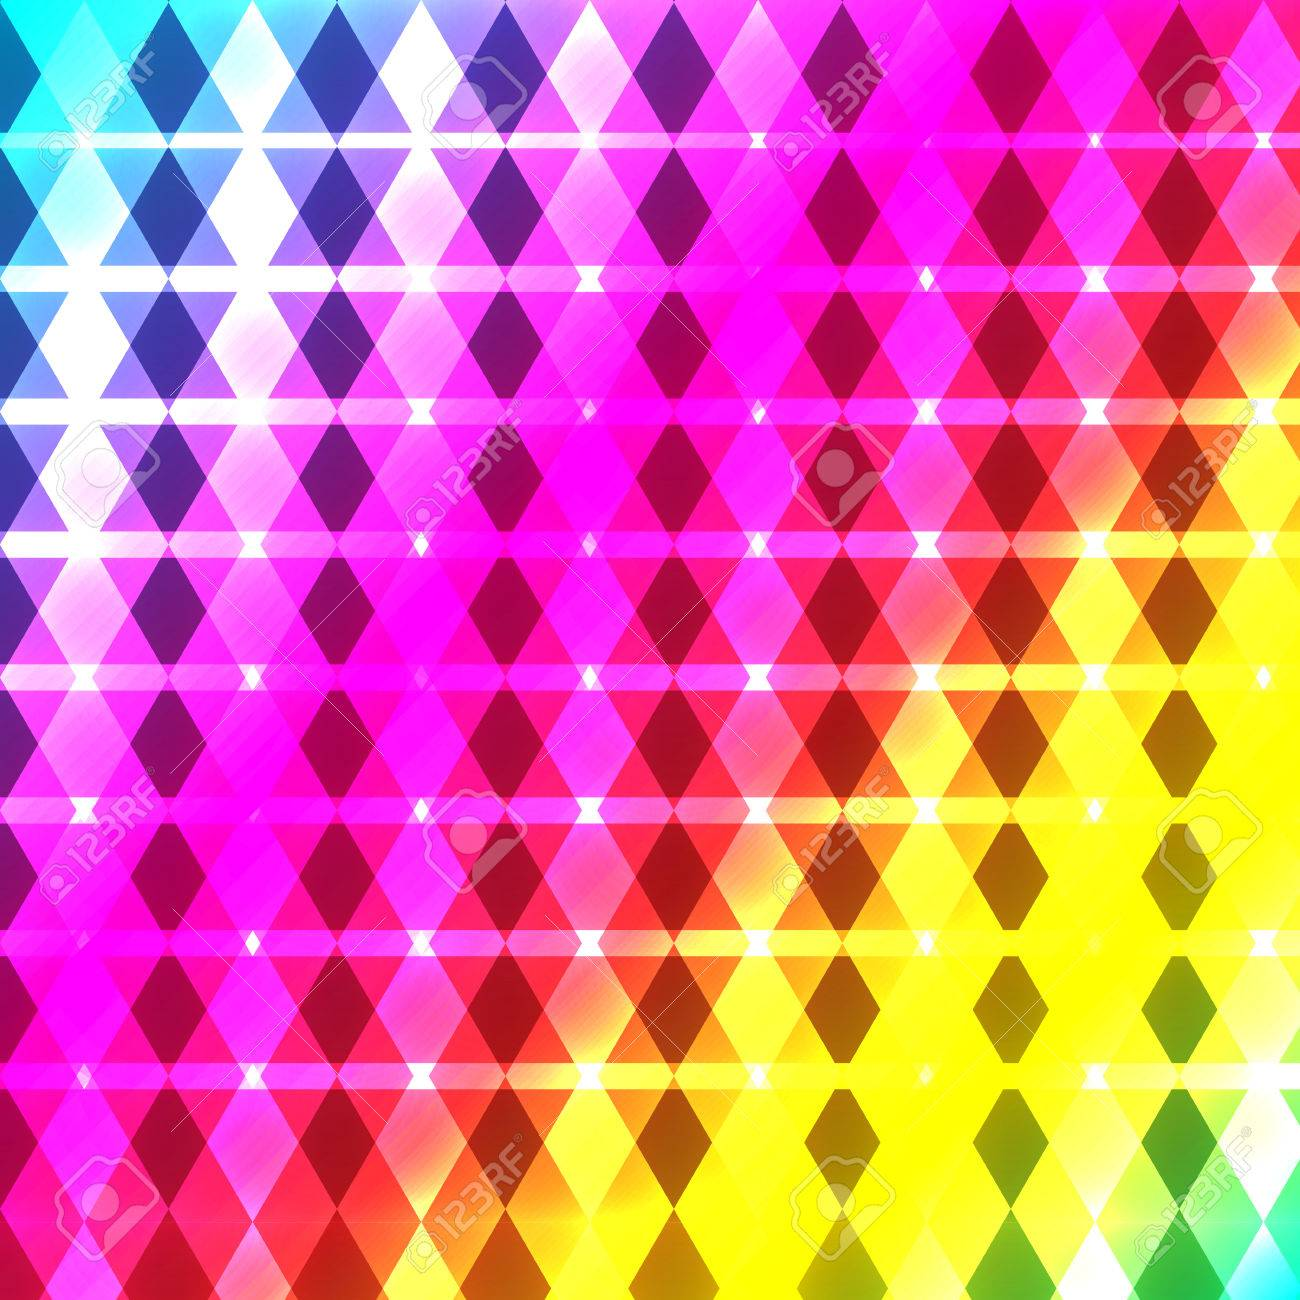 shiny abstract wallpaper in bright rainbow colors royalty free